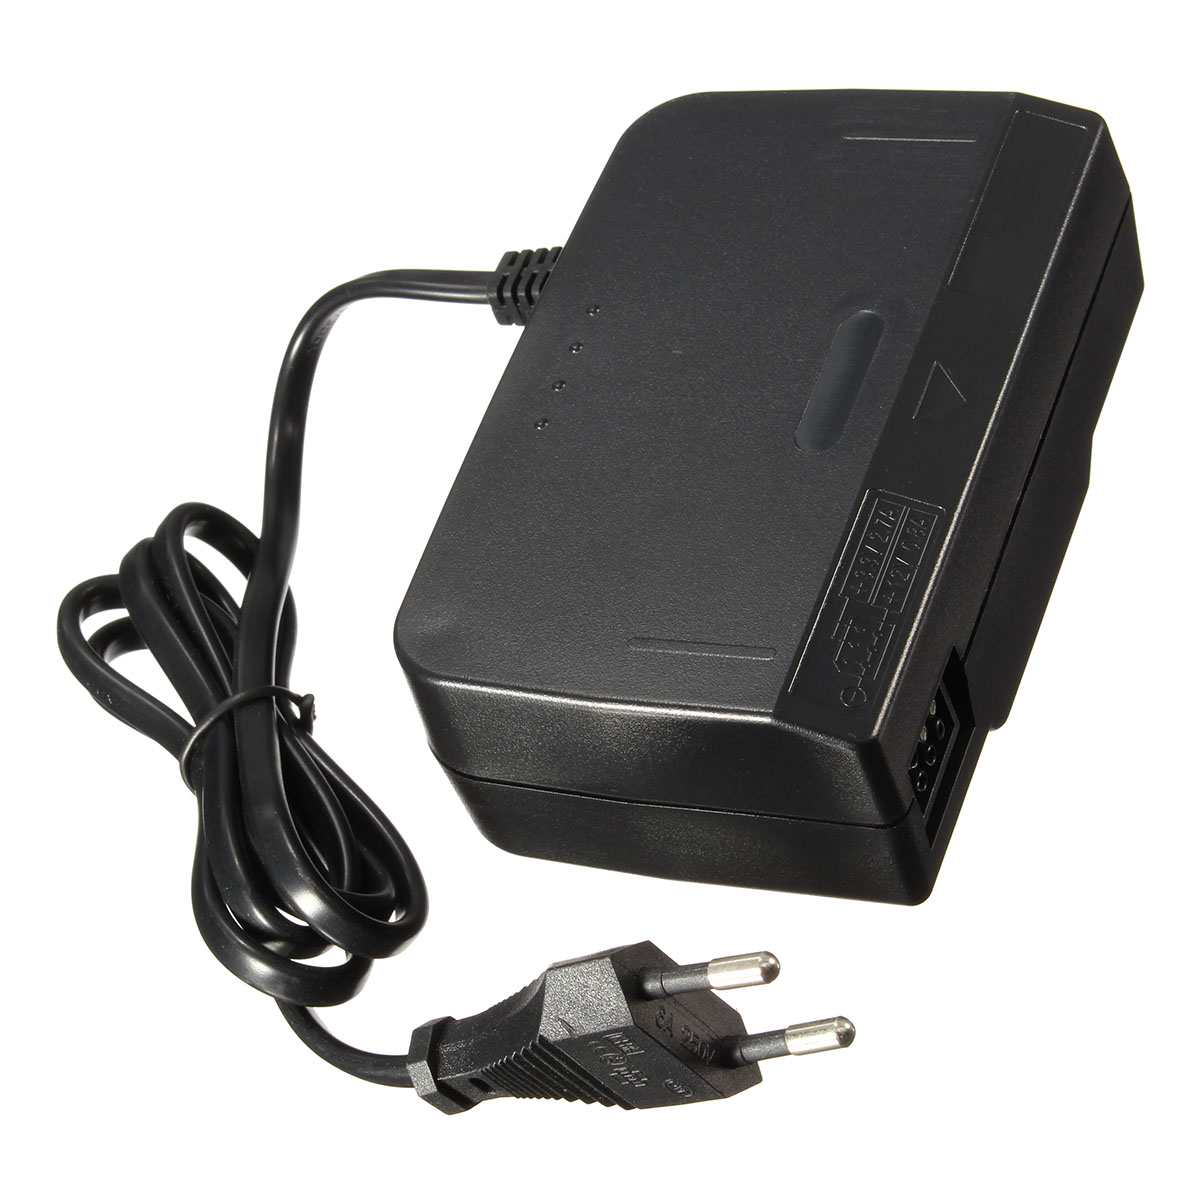 AC100-245V DC Power Supply Adapter Charger Wall Charger For Nintendo 64 Game Console